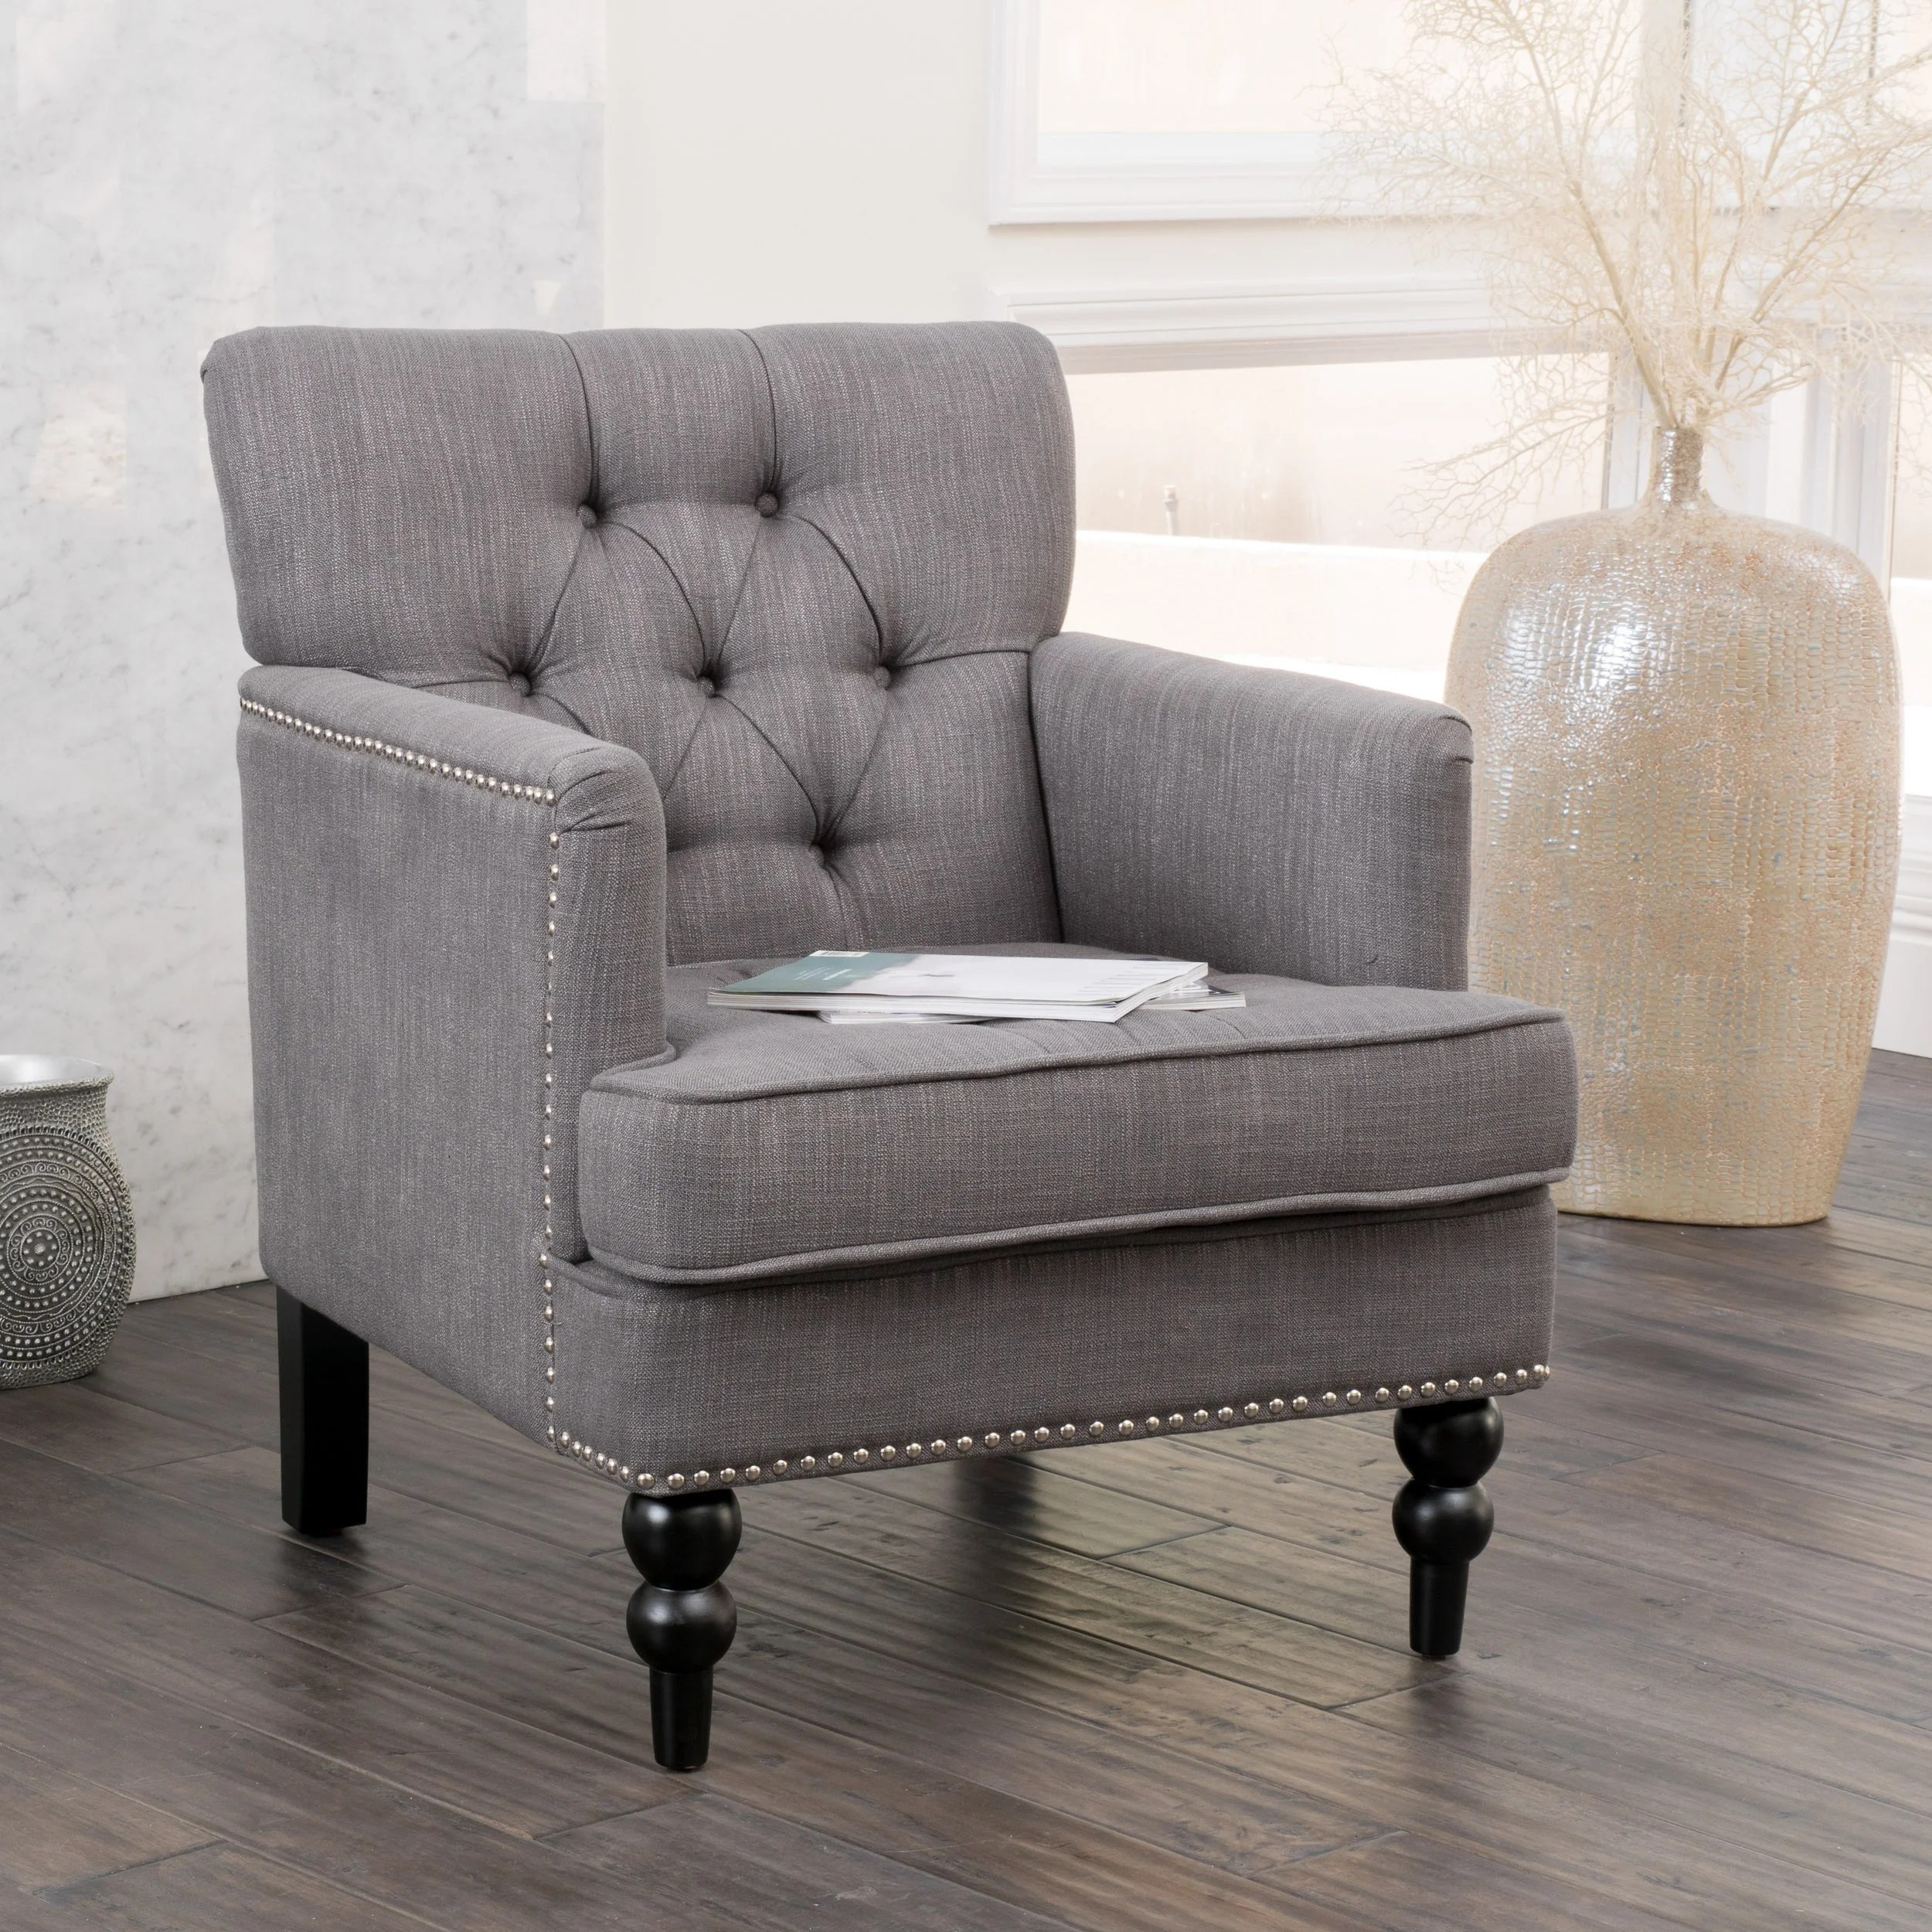 Overstock Chairs Christopher Knight Home Malone Charcoal Grey Club Chair